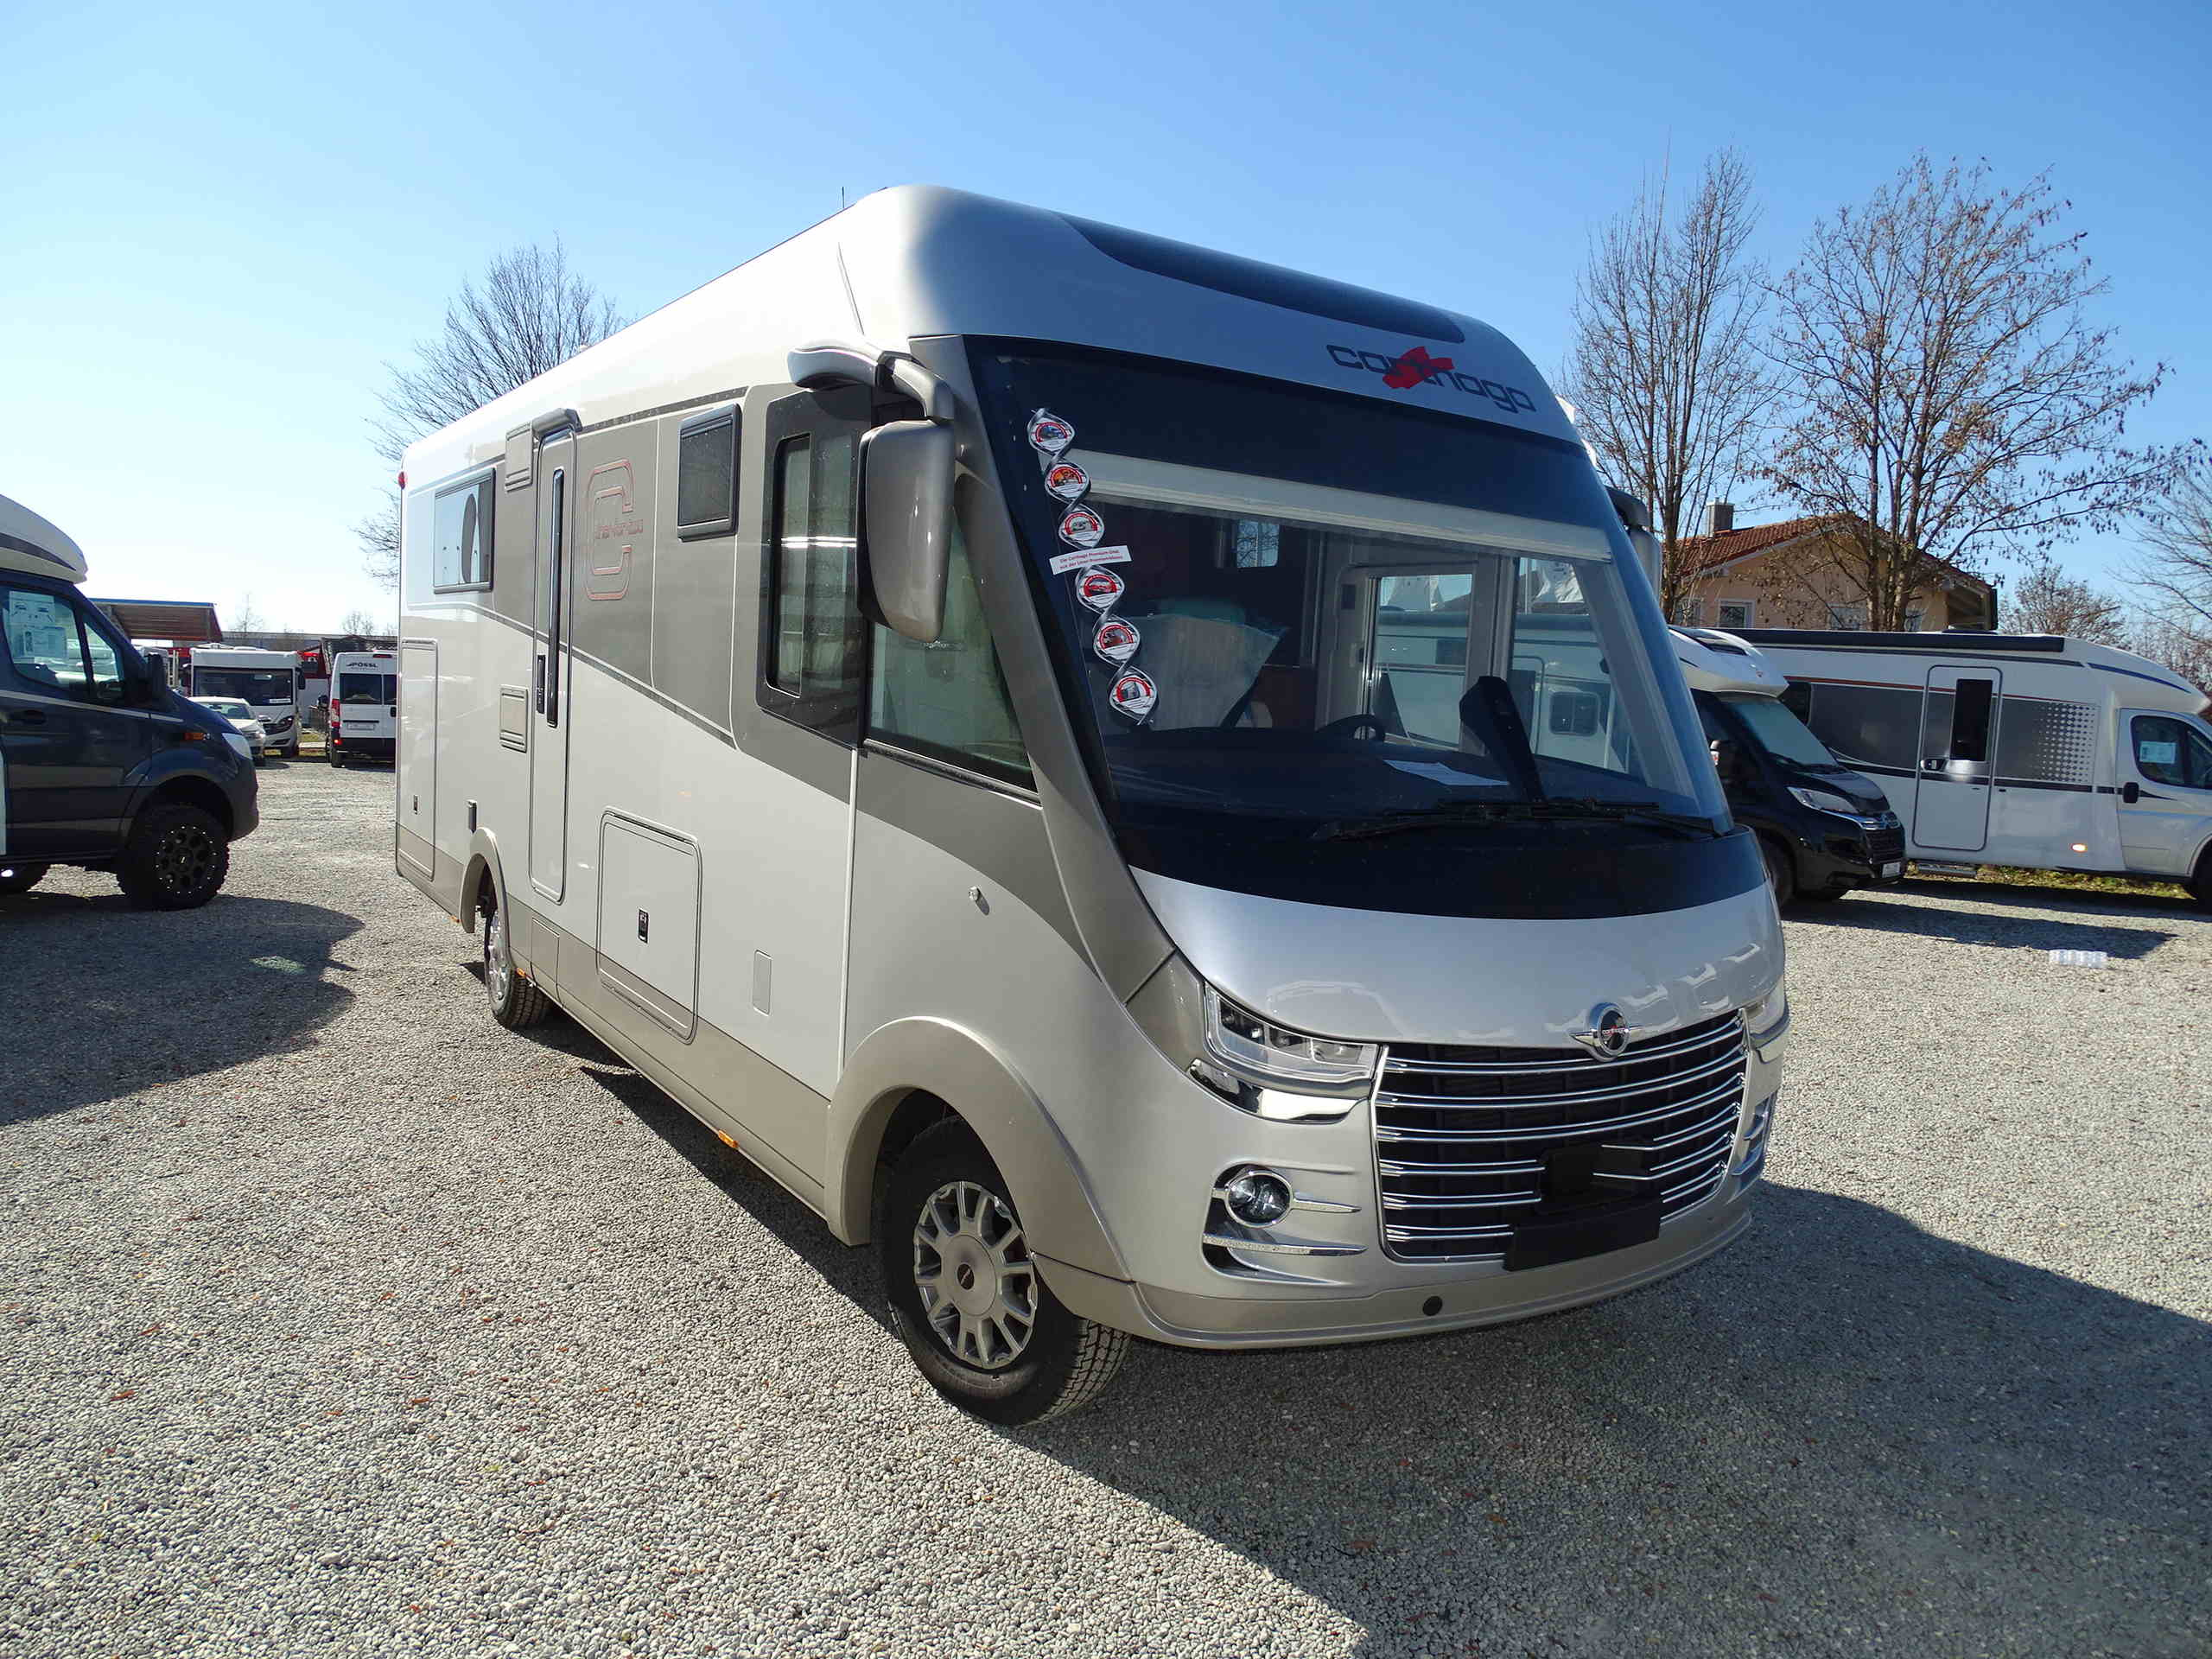 CARTHAGO, LINERFORTWO I 53 L IVECO, integrierter